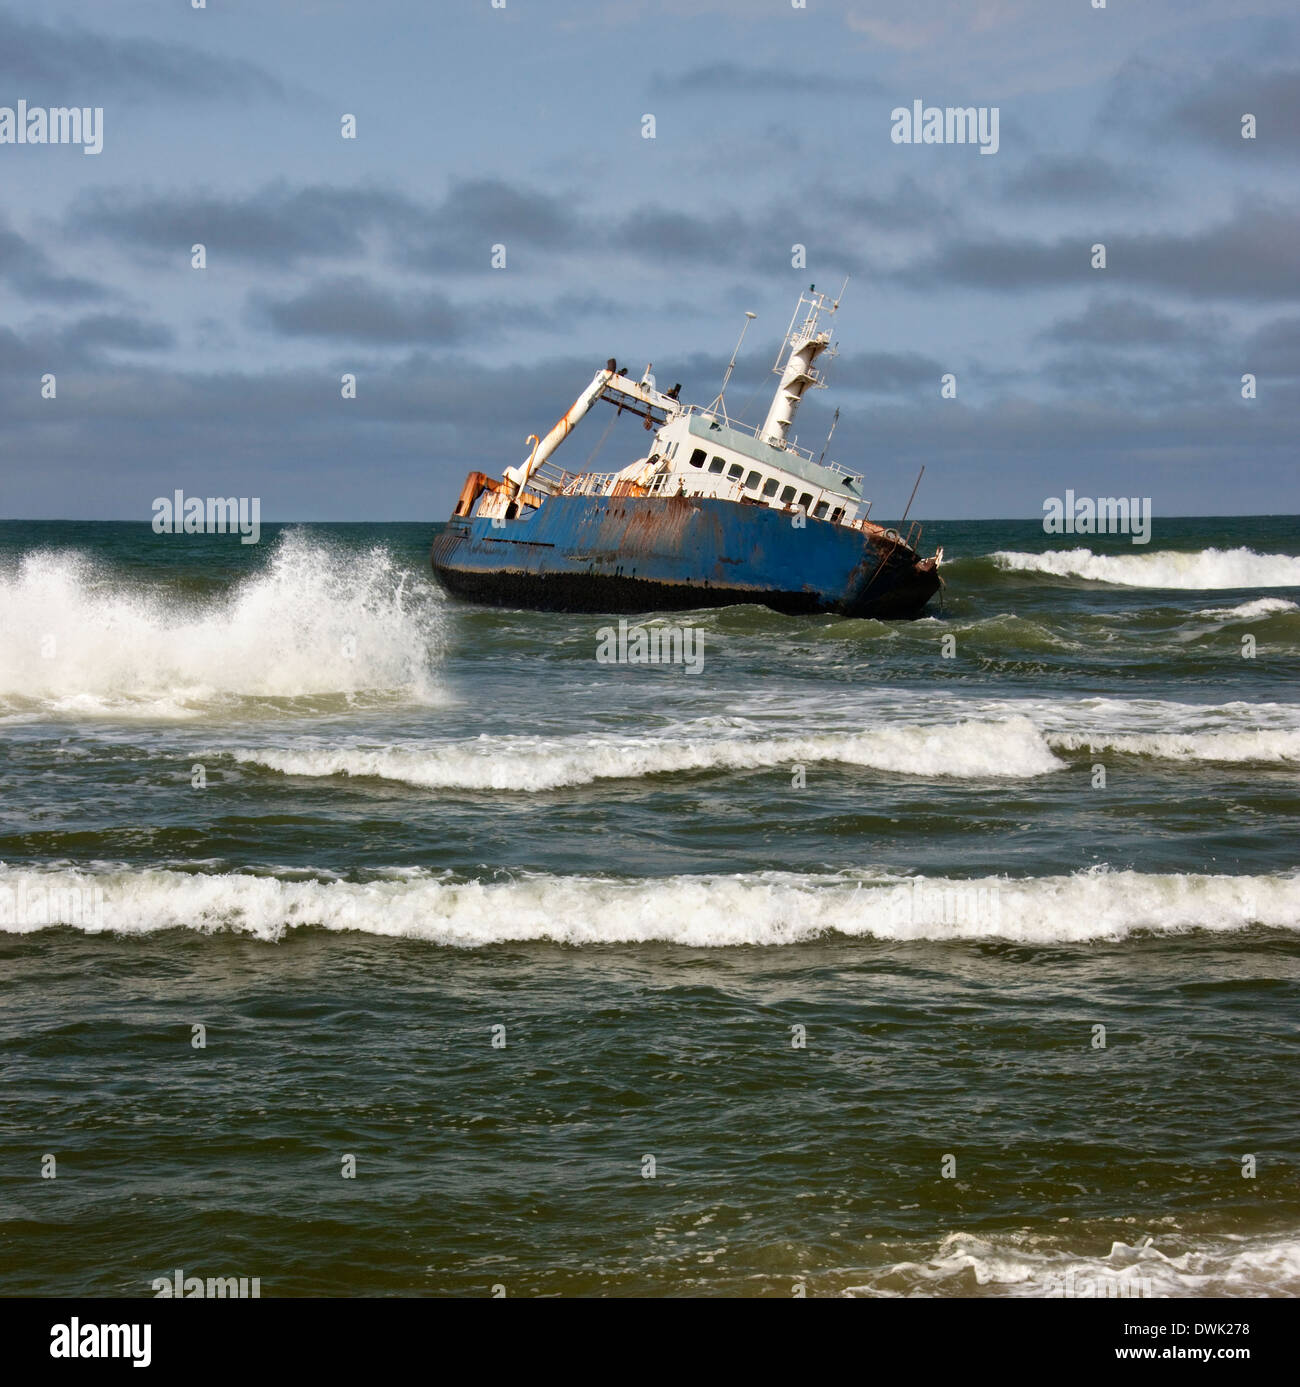 A shipwreck on the Skeleton Coast in Namibia - Stock Image